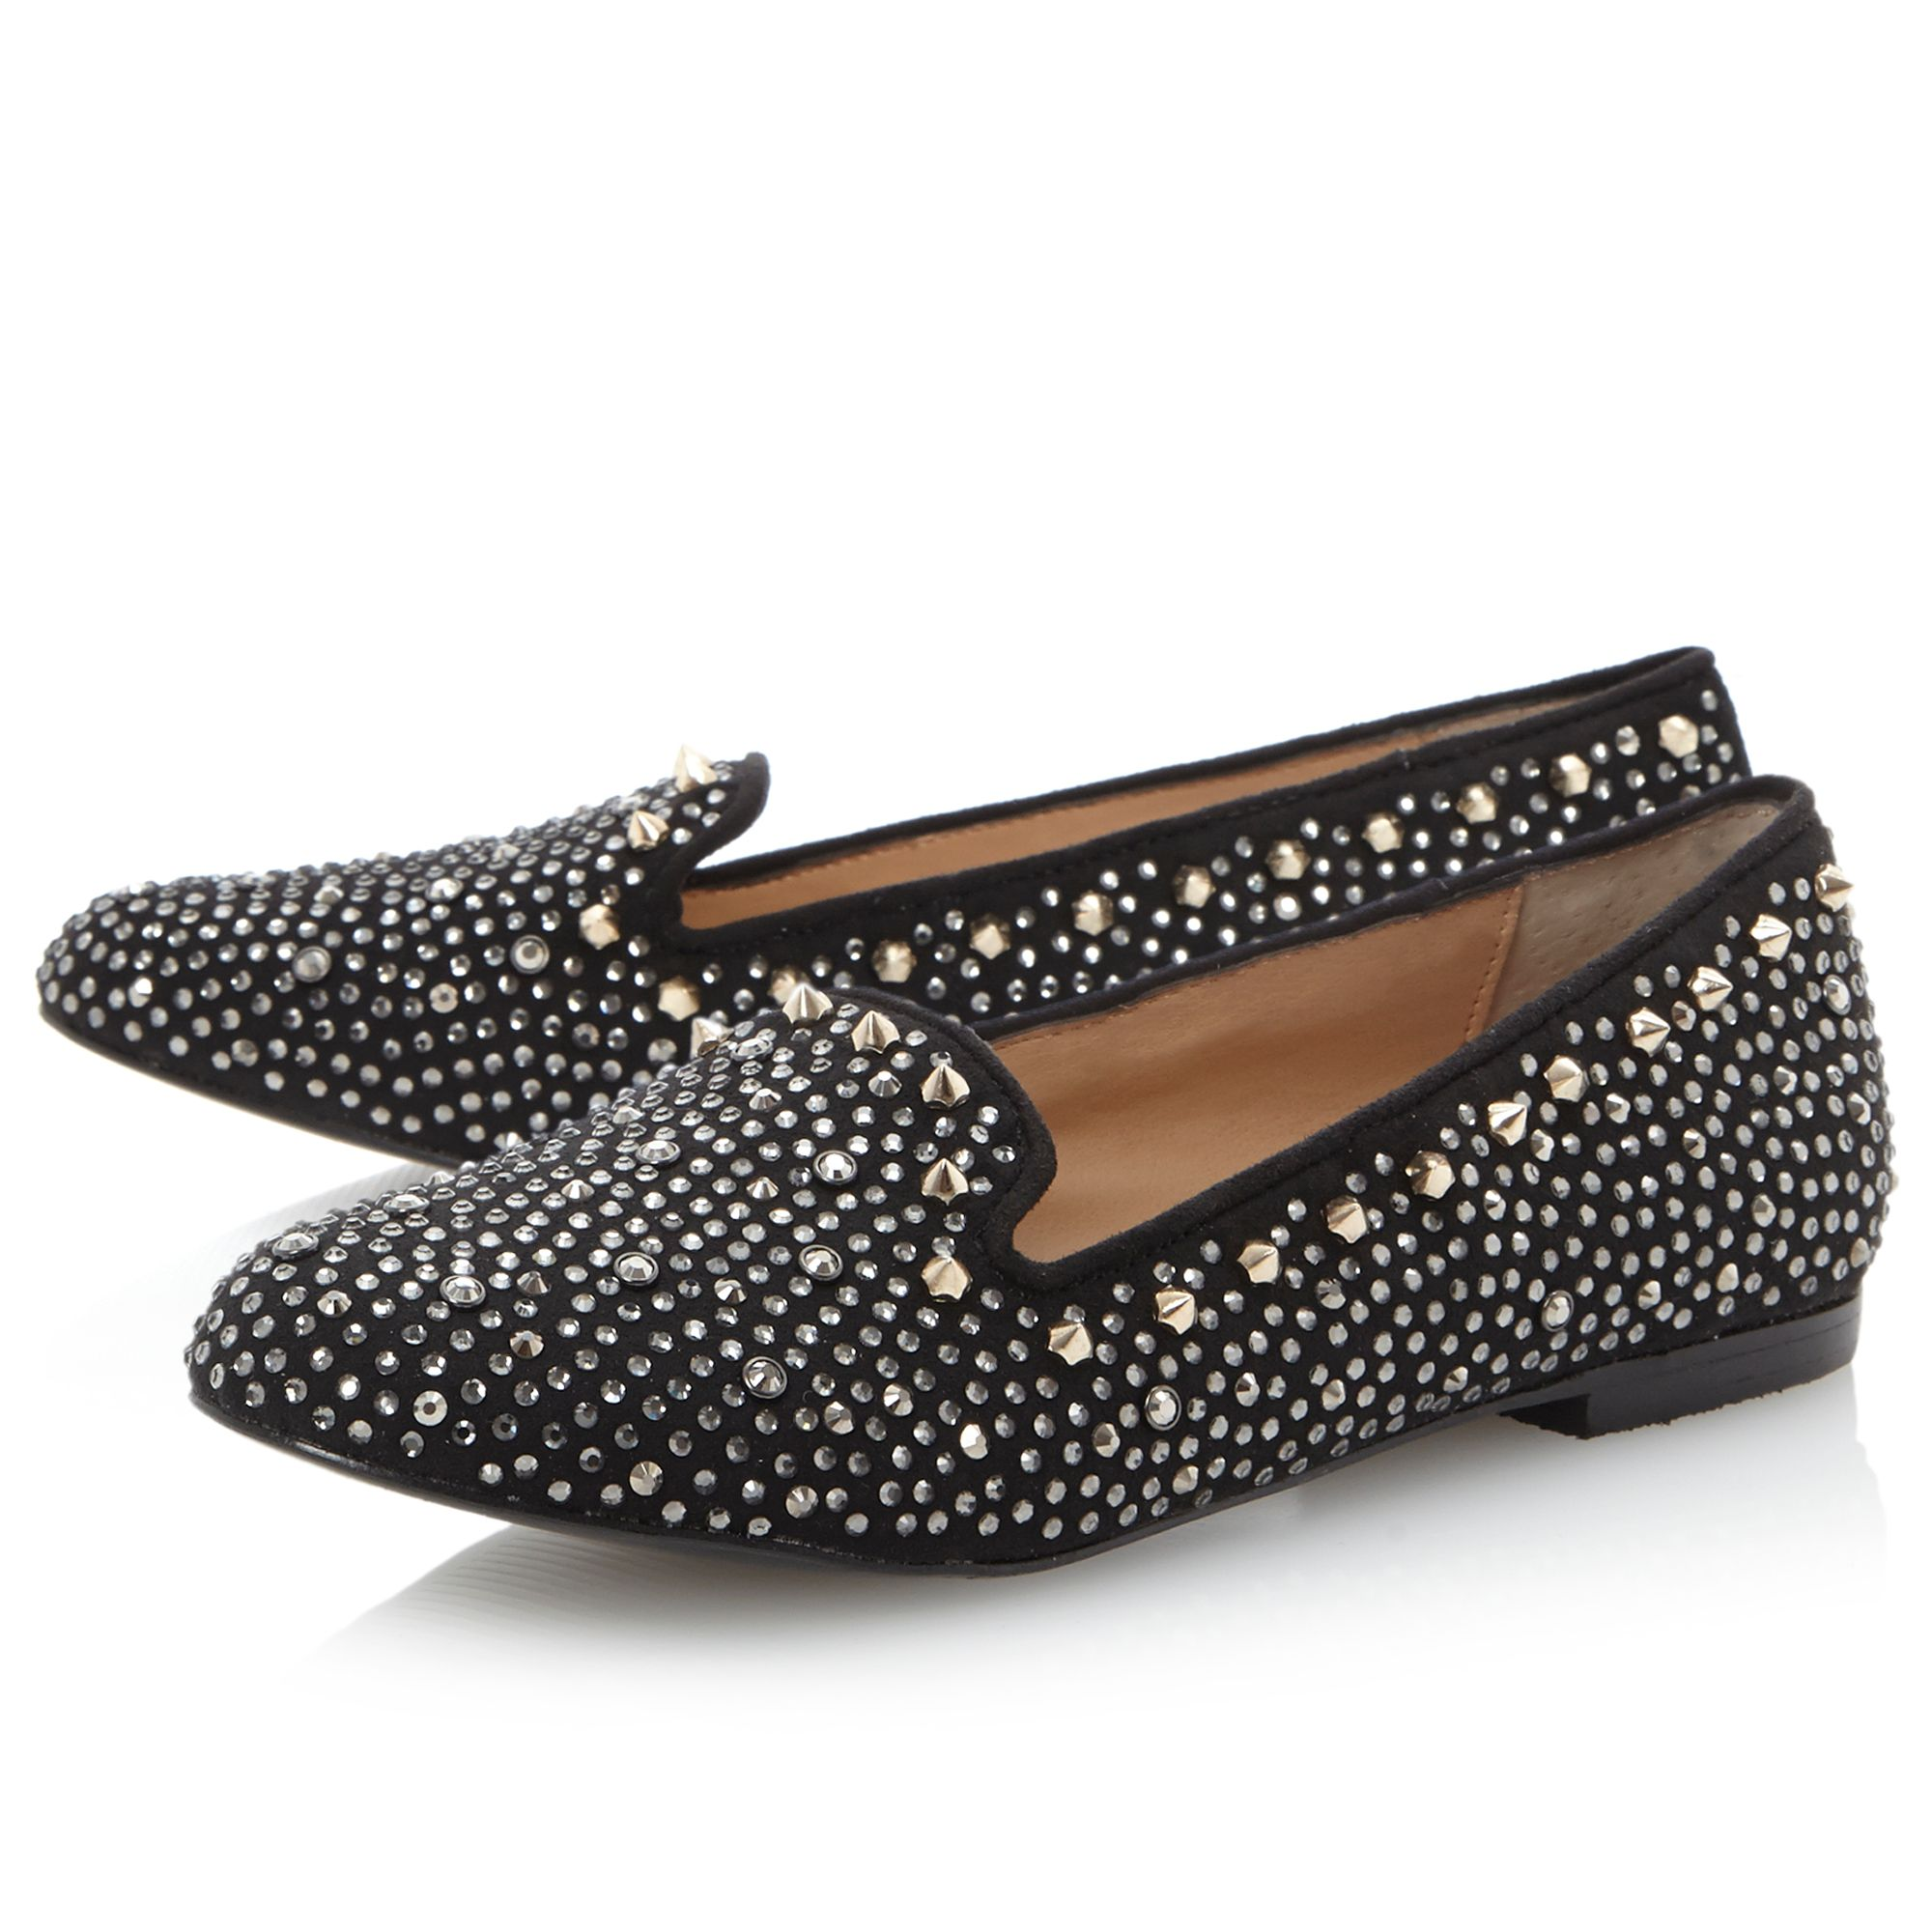 Graanite SM studded slipper loafer shoes